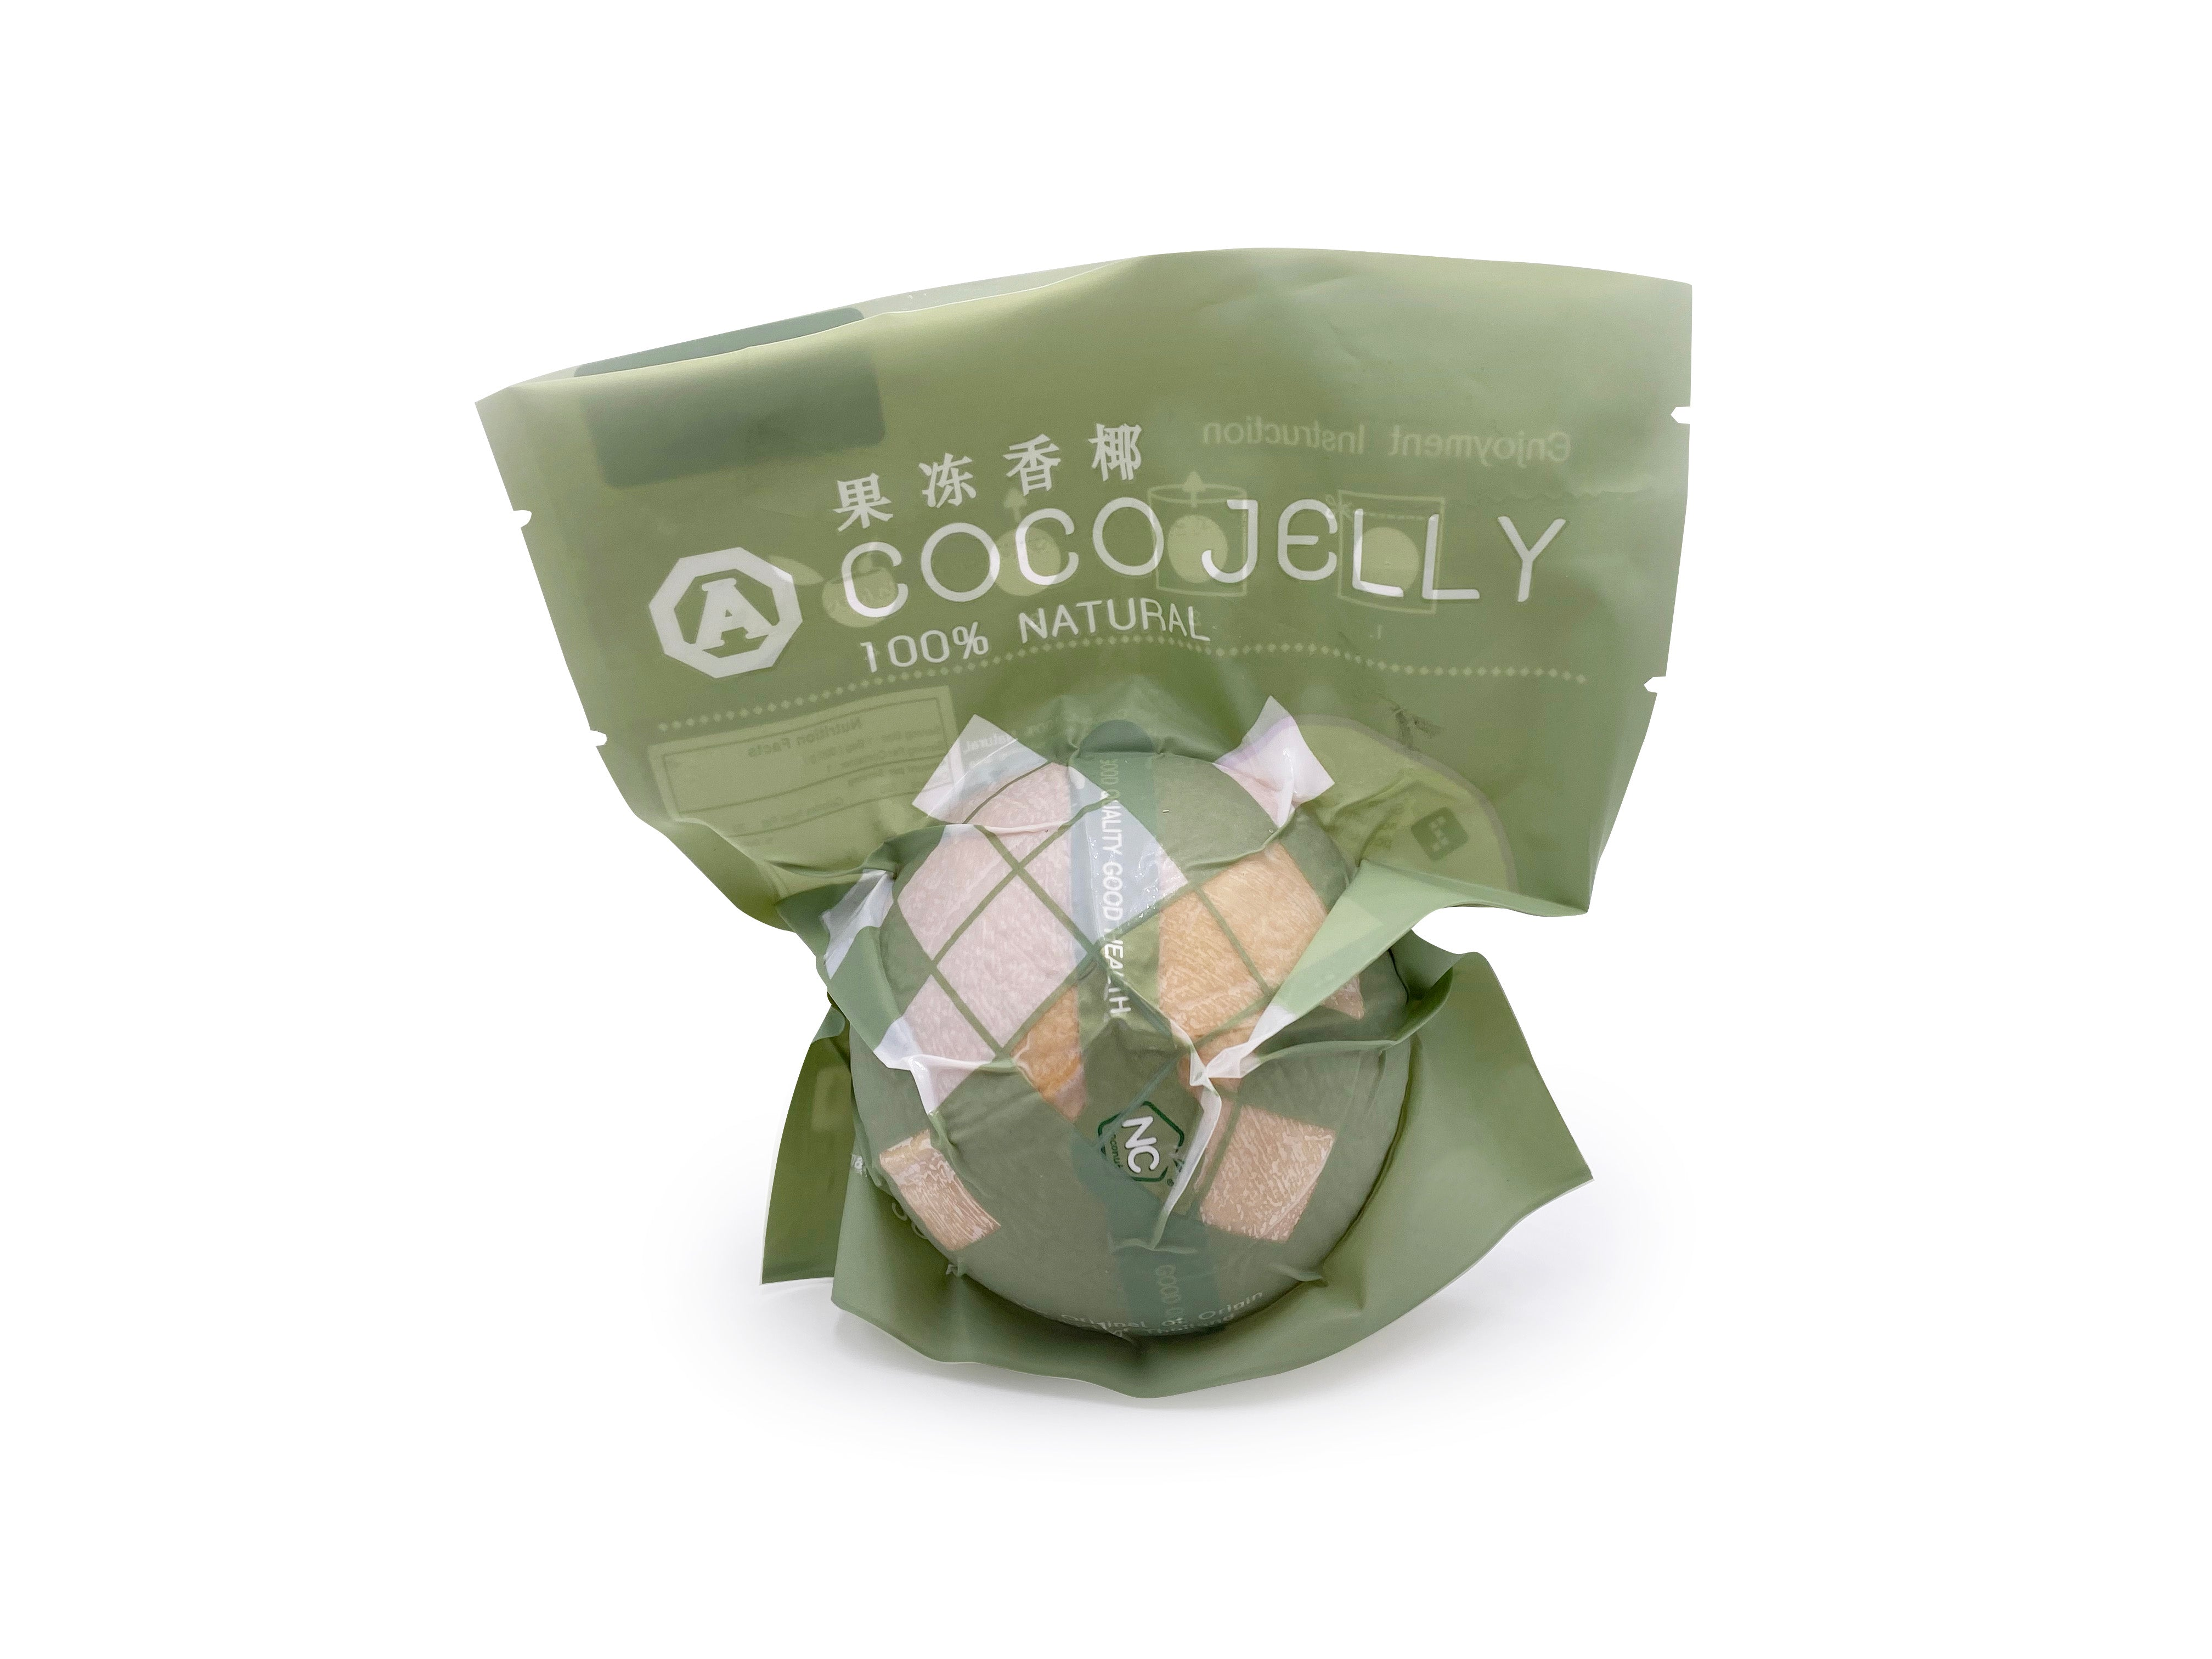 Coconut Jelly 果冻香椰-Fresh Veggies SG Fresh Vegetables Online Delivery in Singapore